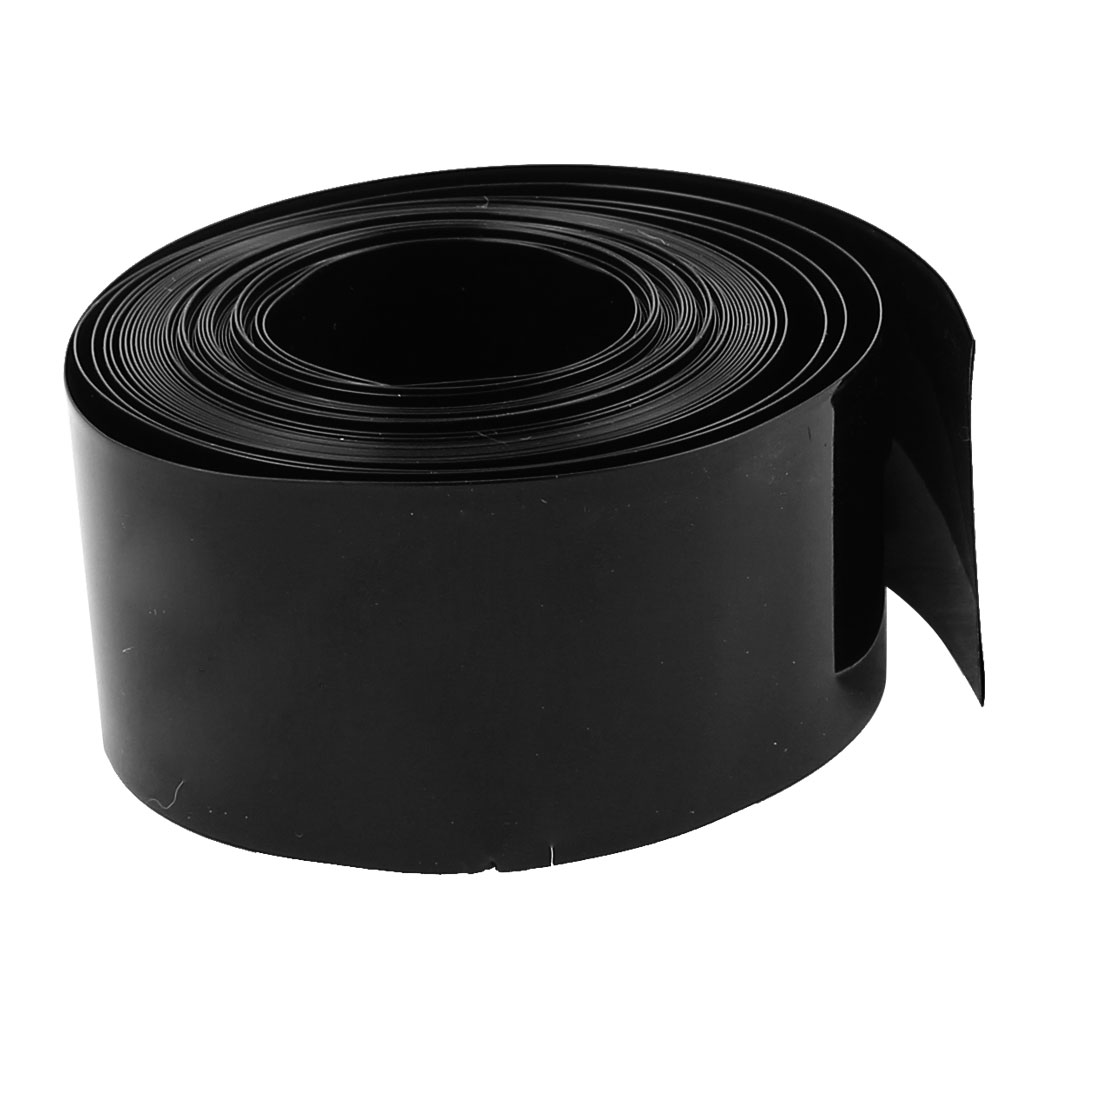 16ft 18.5mm Dia PVC Insulated Heat Shrink Tubing Battery Protective Tube Black